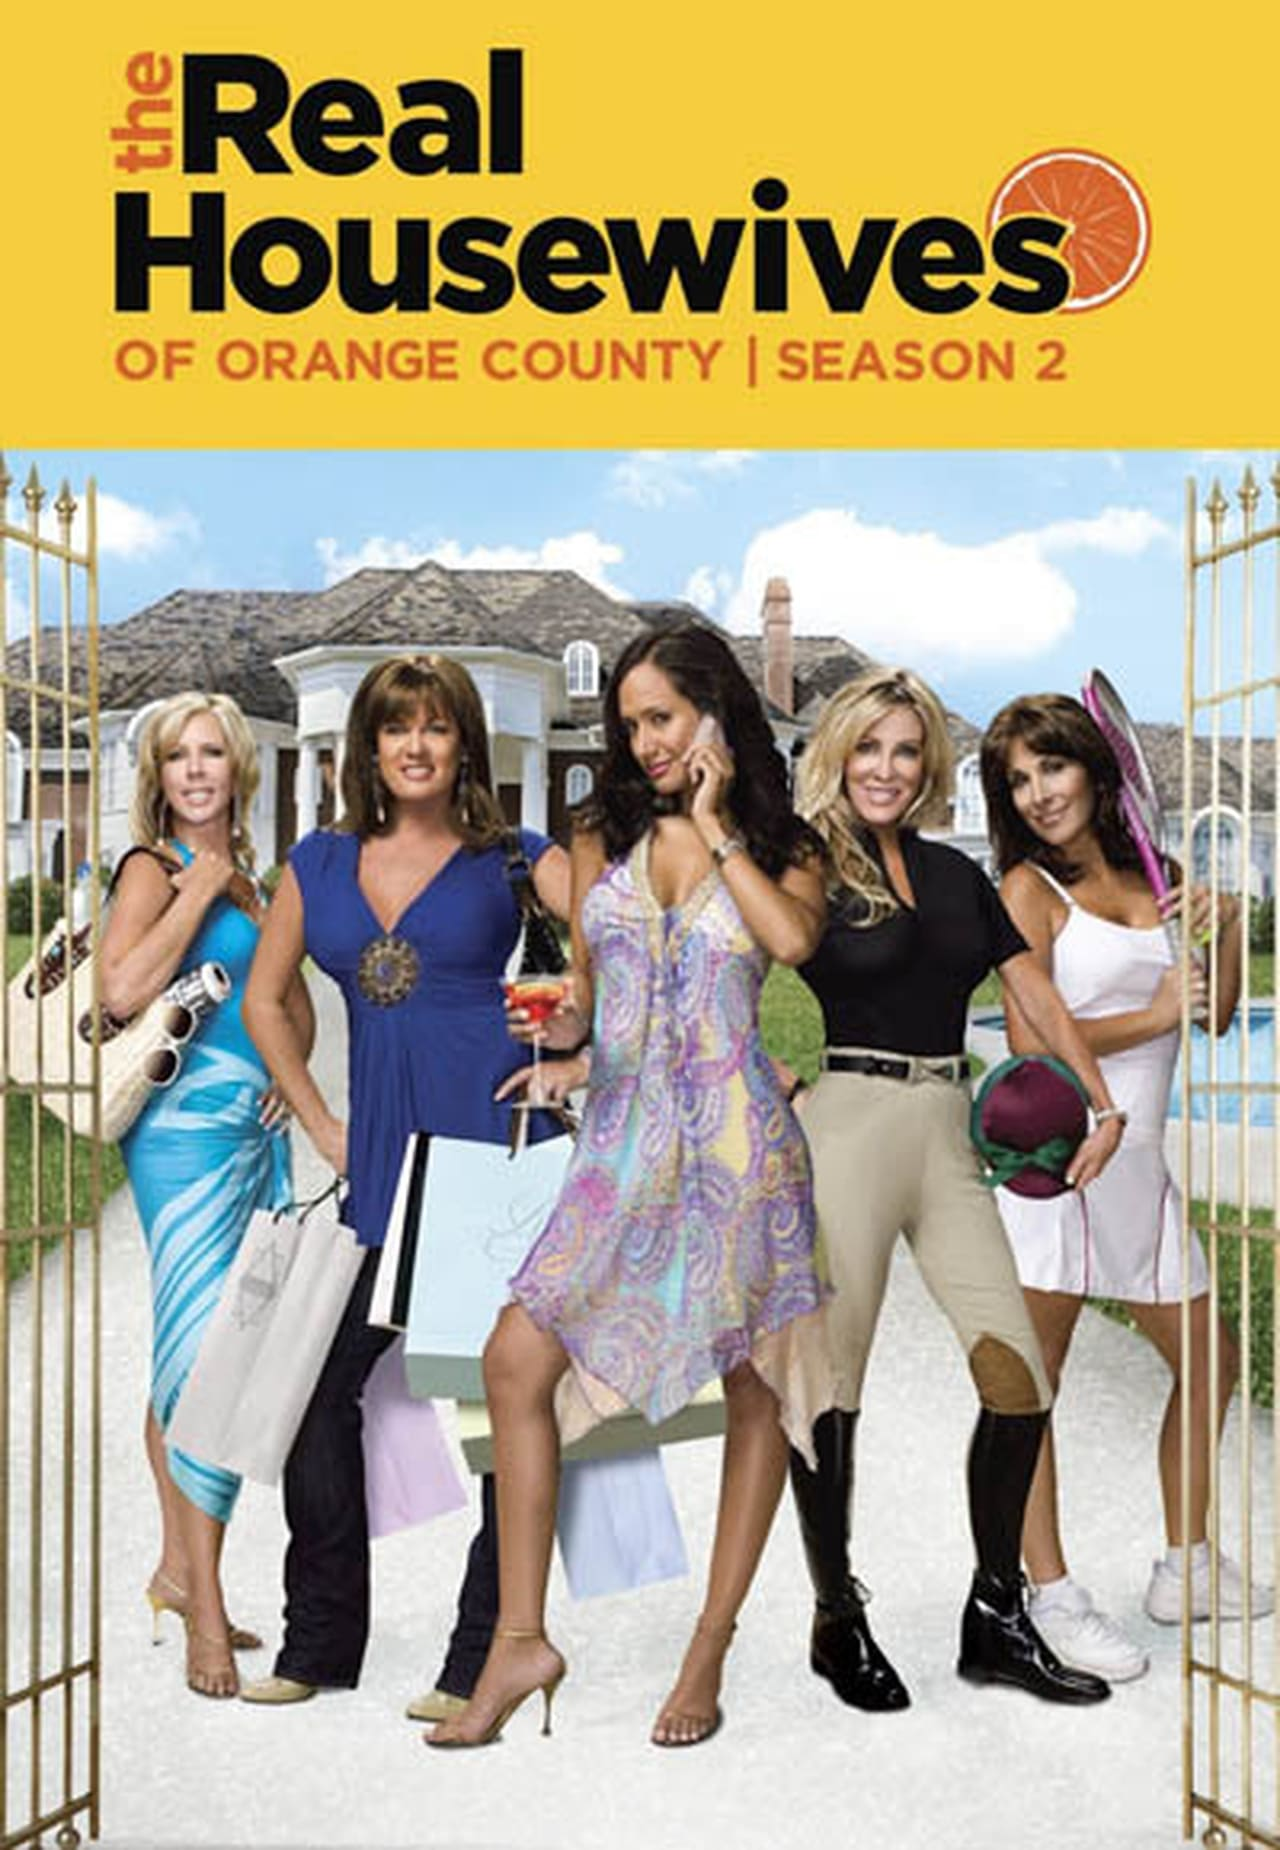 The Real Housewives Of Orange County Season 2 (2007) putlockers cafe